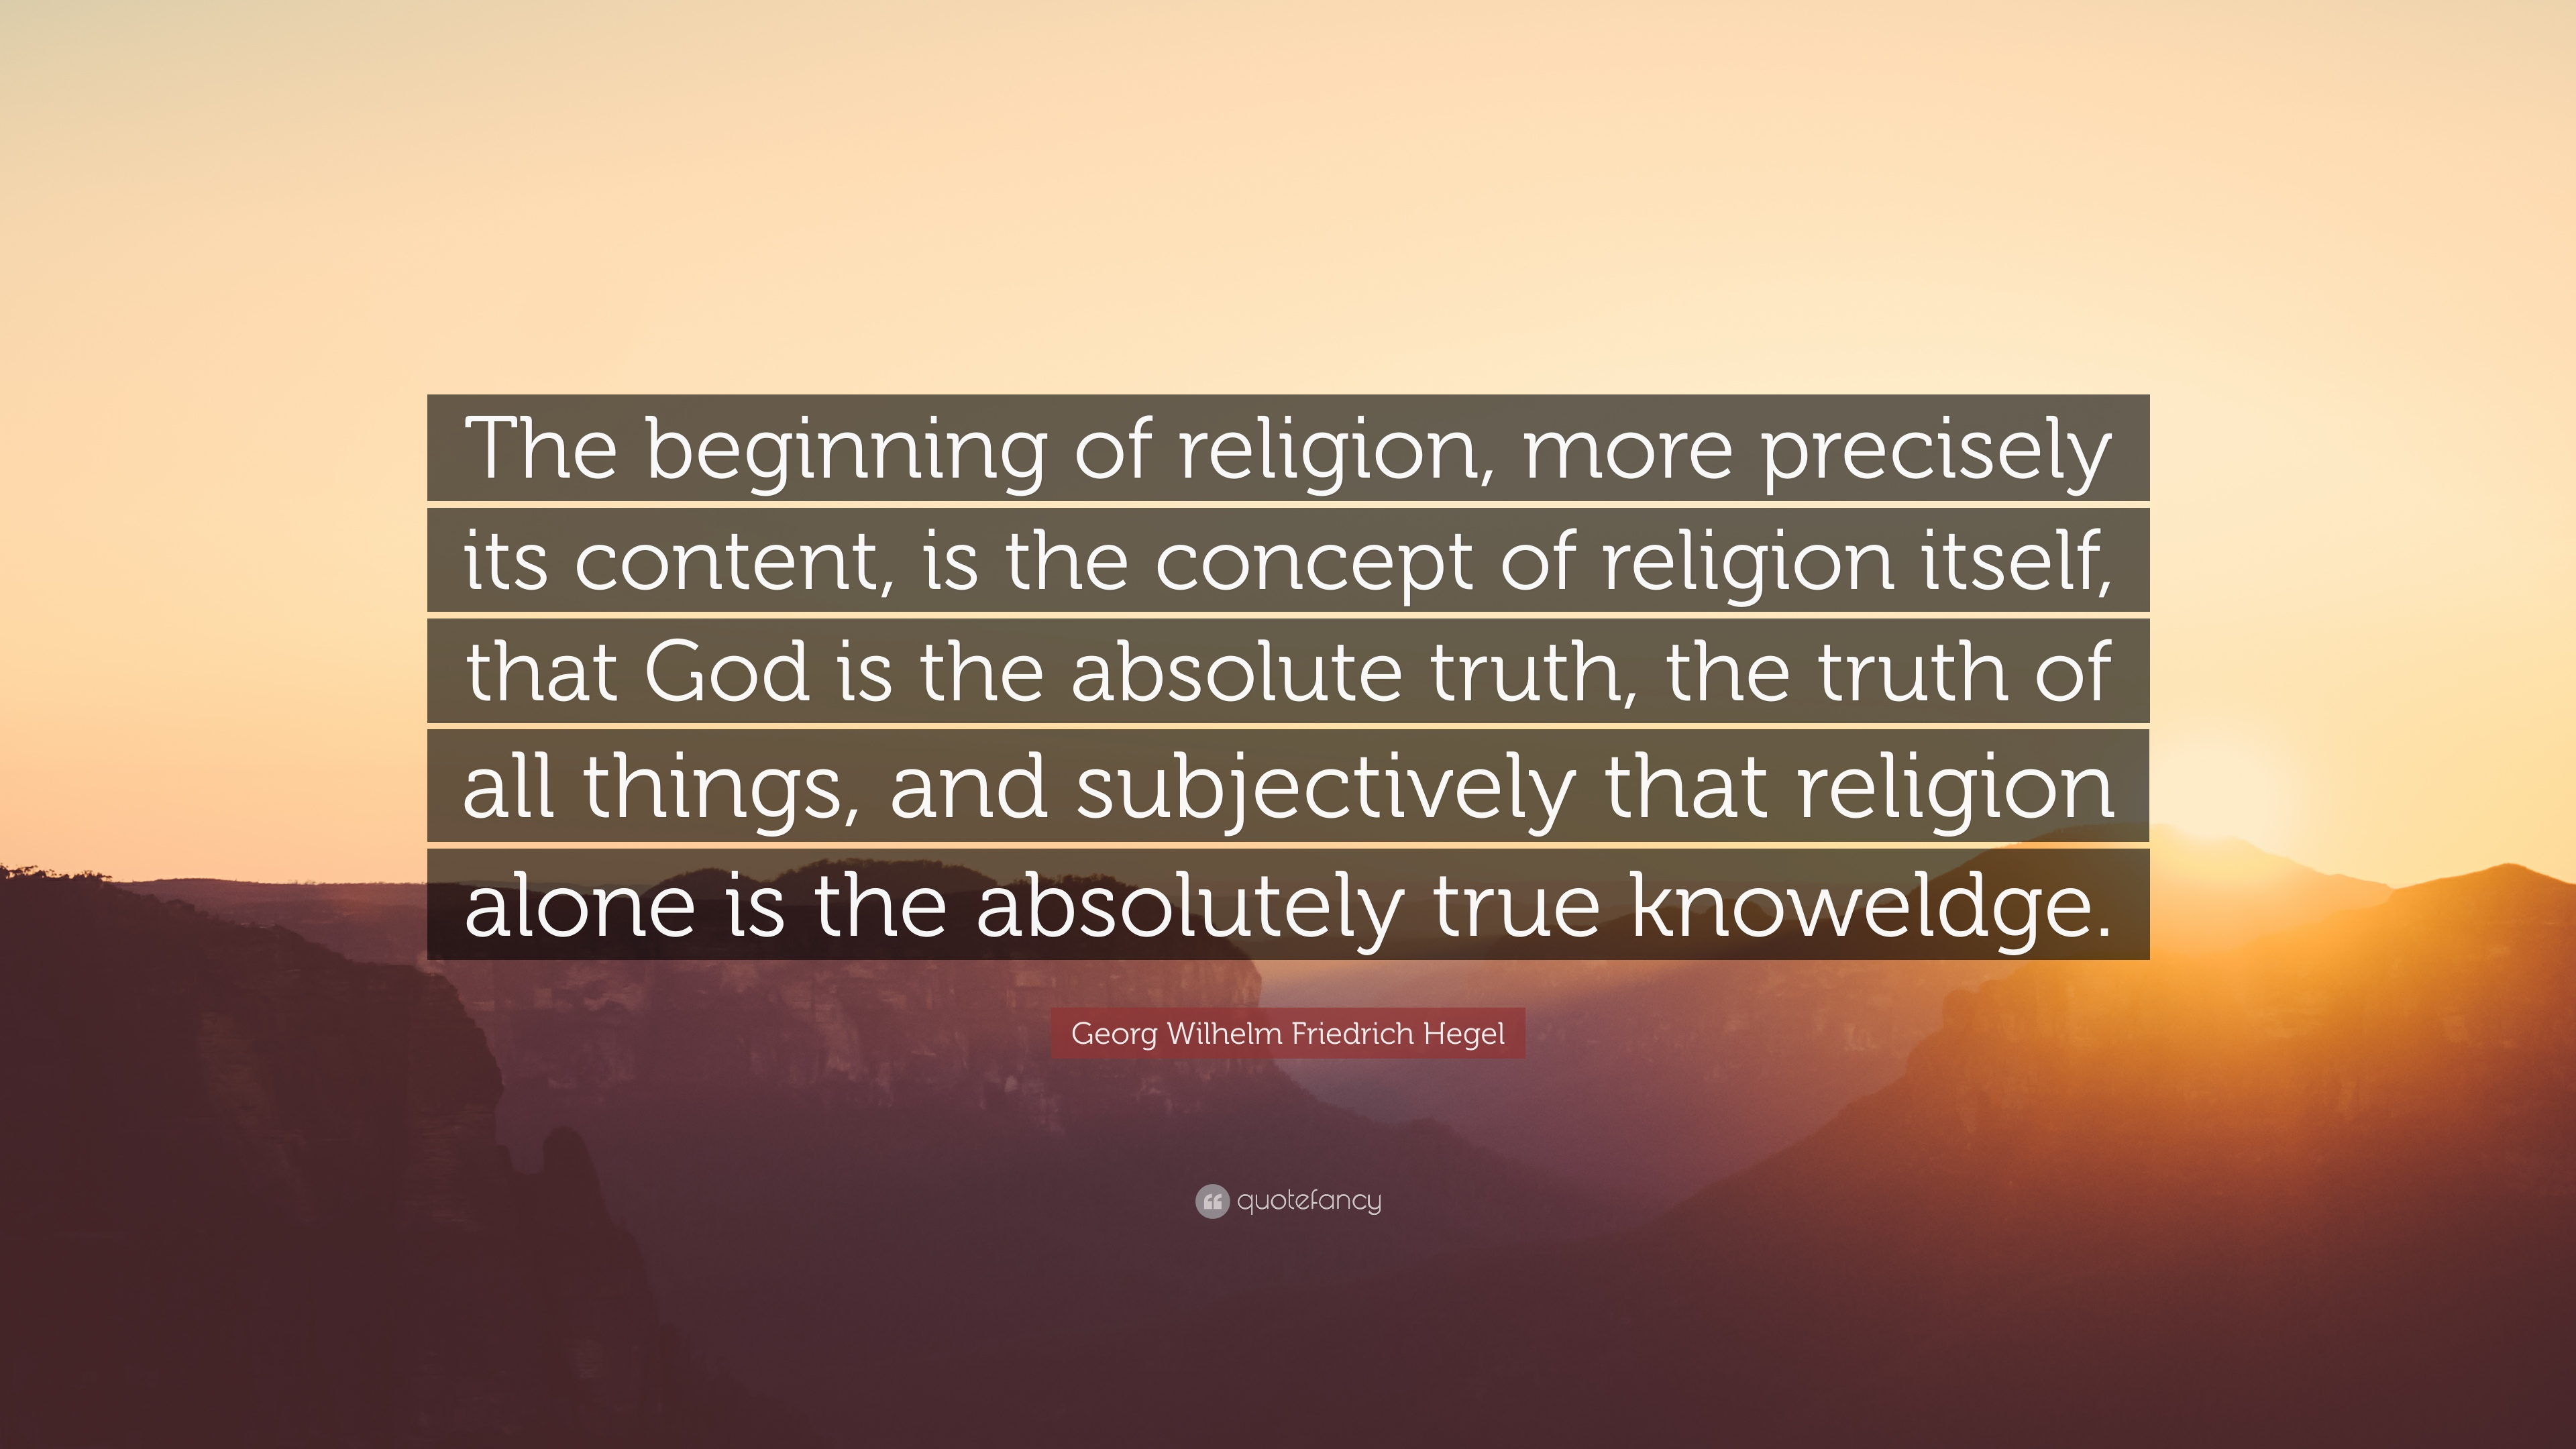 Hegel and the absolute truth